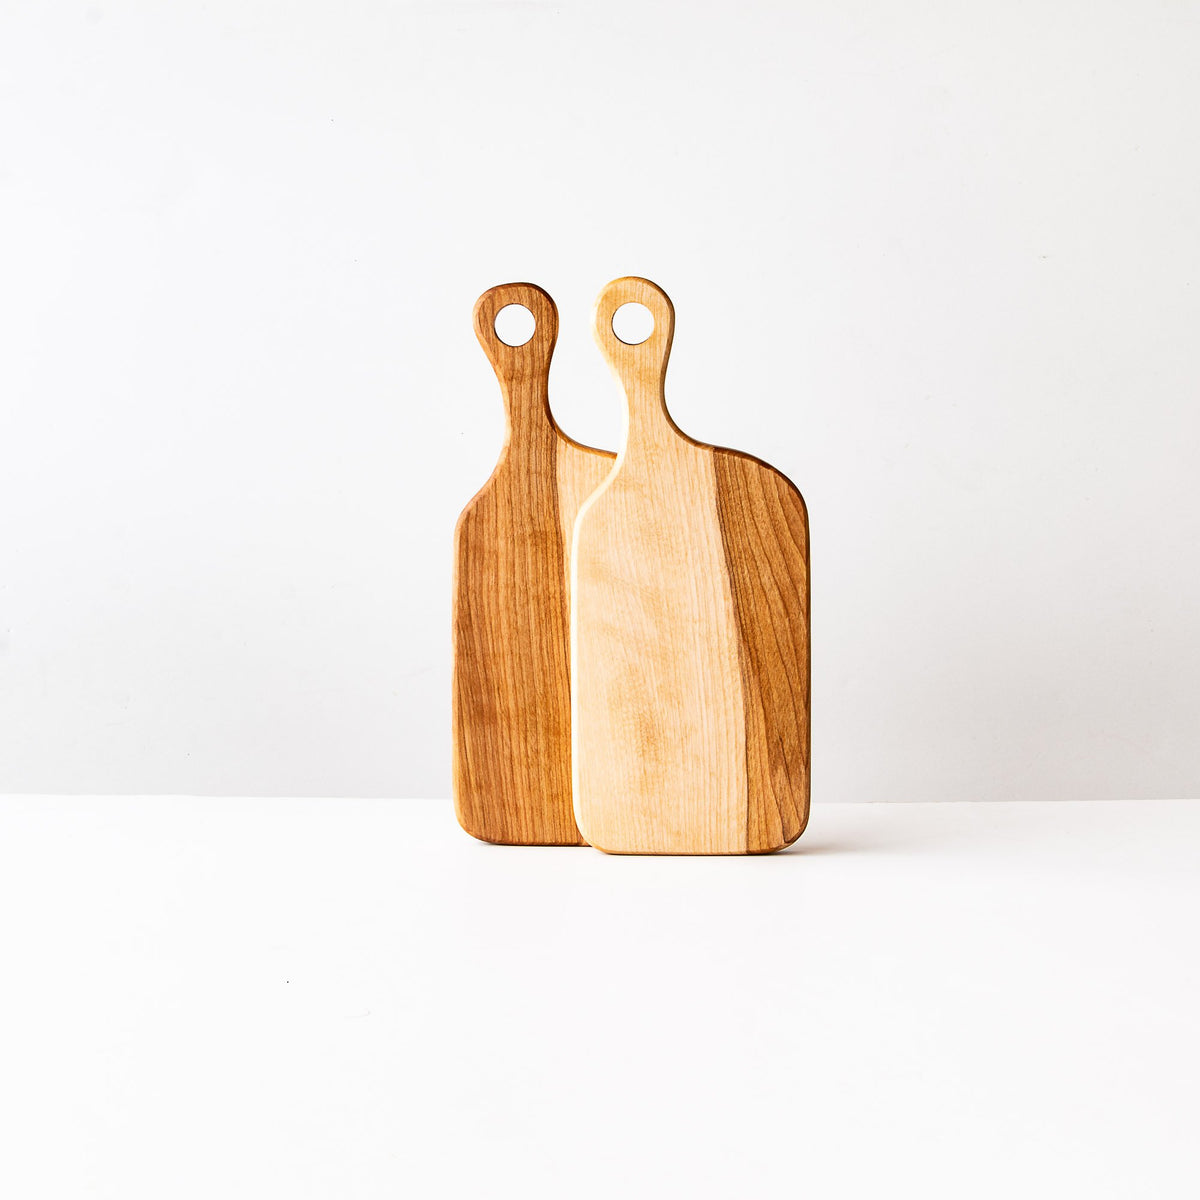 Muskoka N°1 - Two Wooden Cutting Boards in Birch - Sold by Chic & Basta